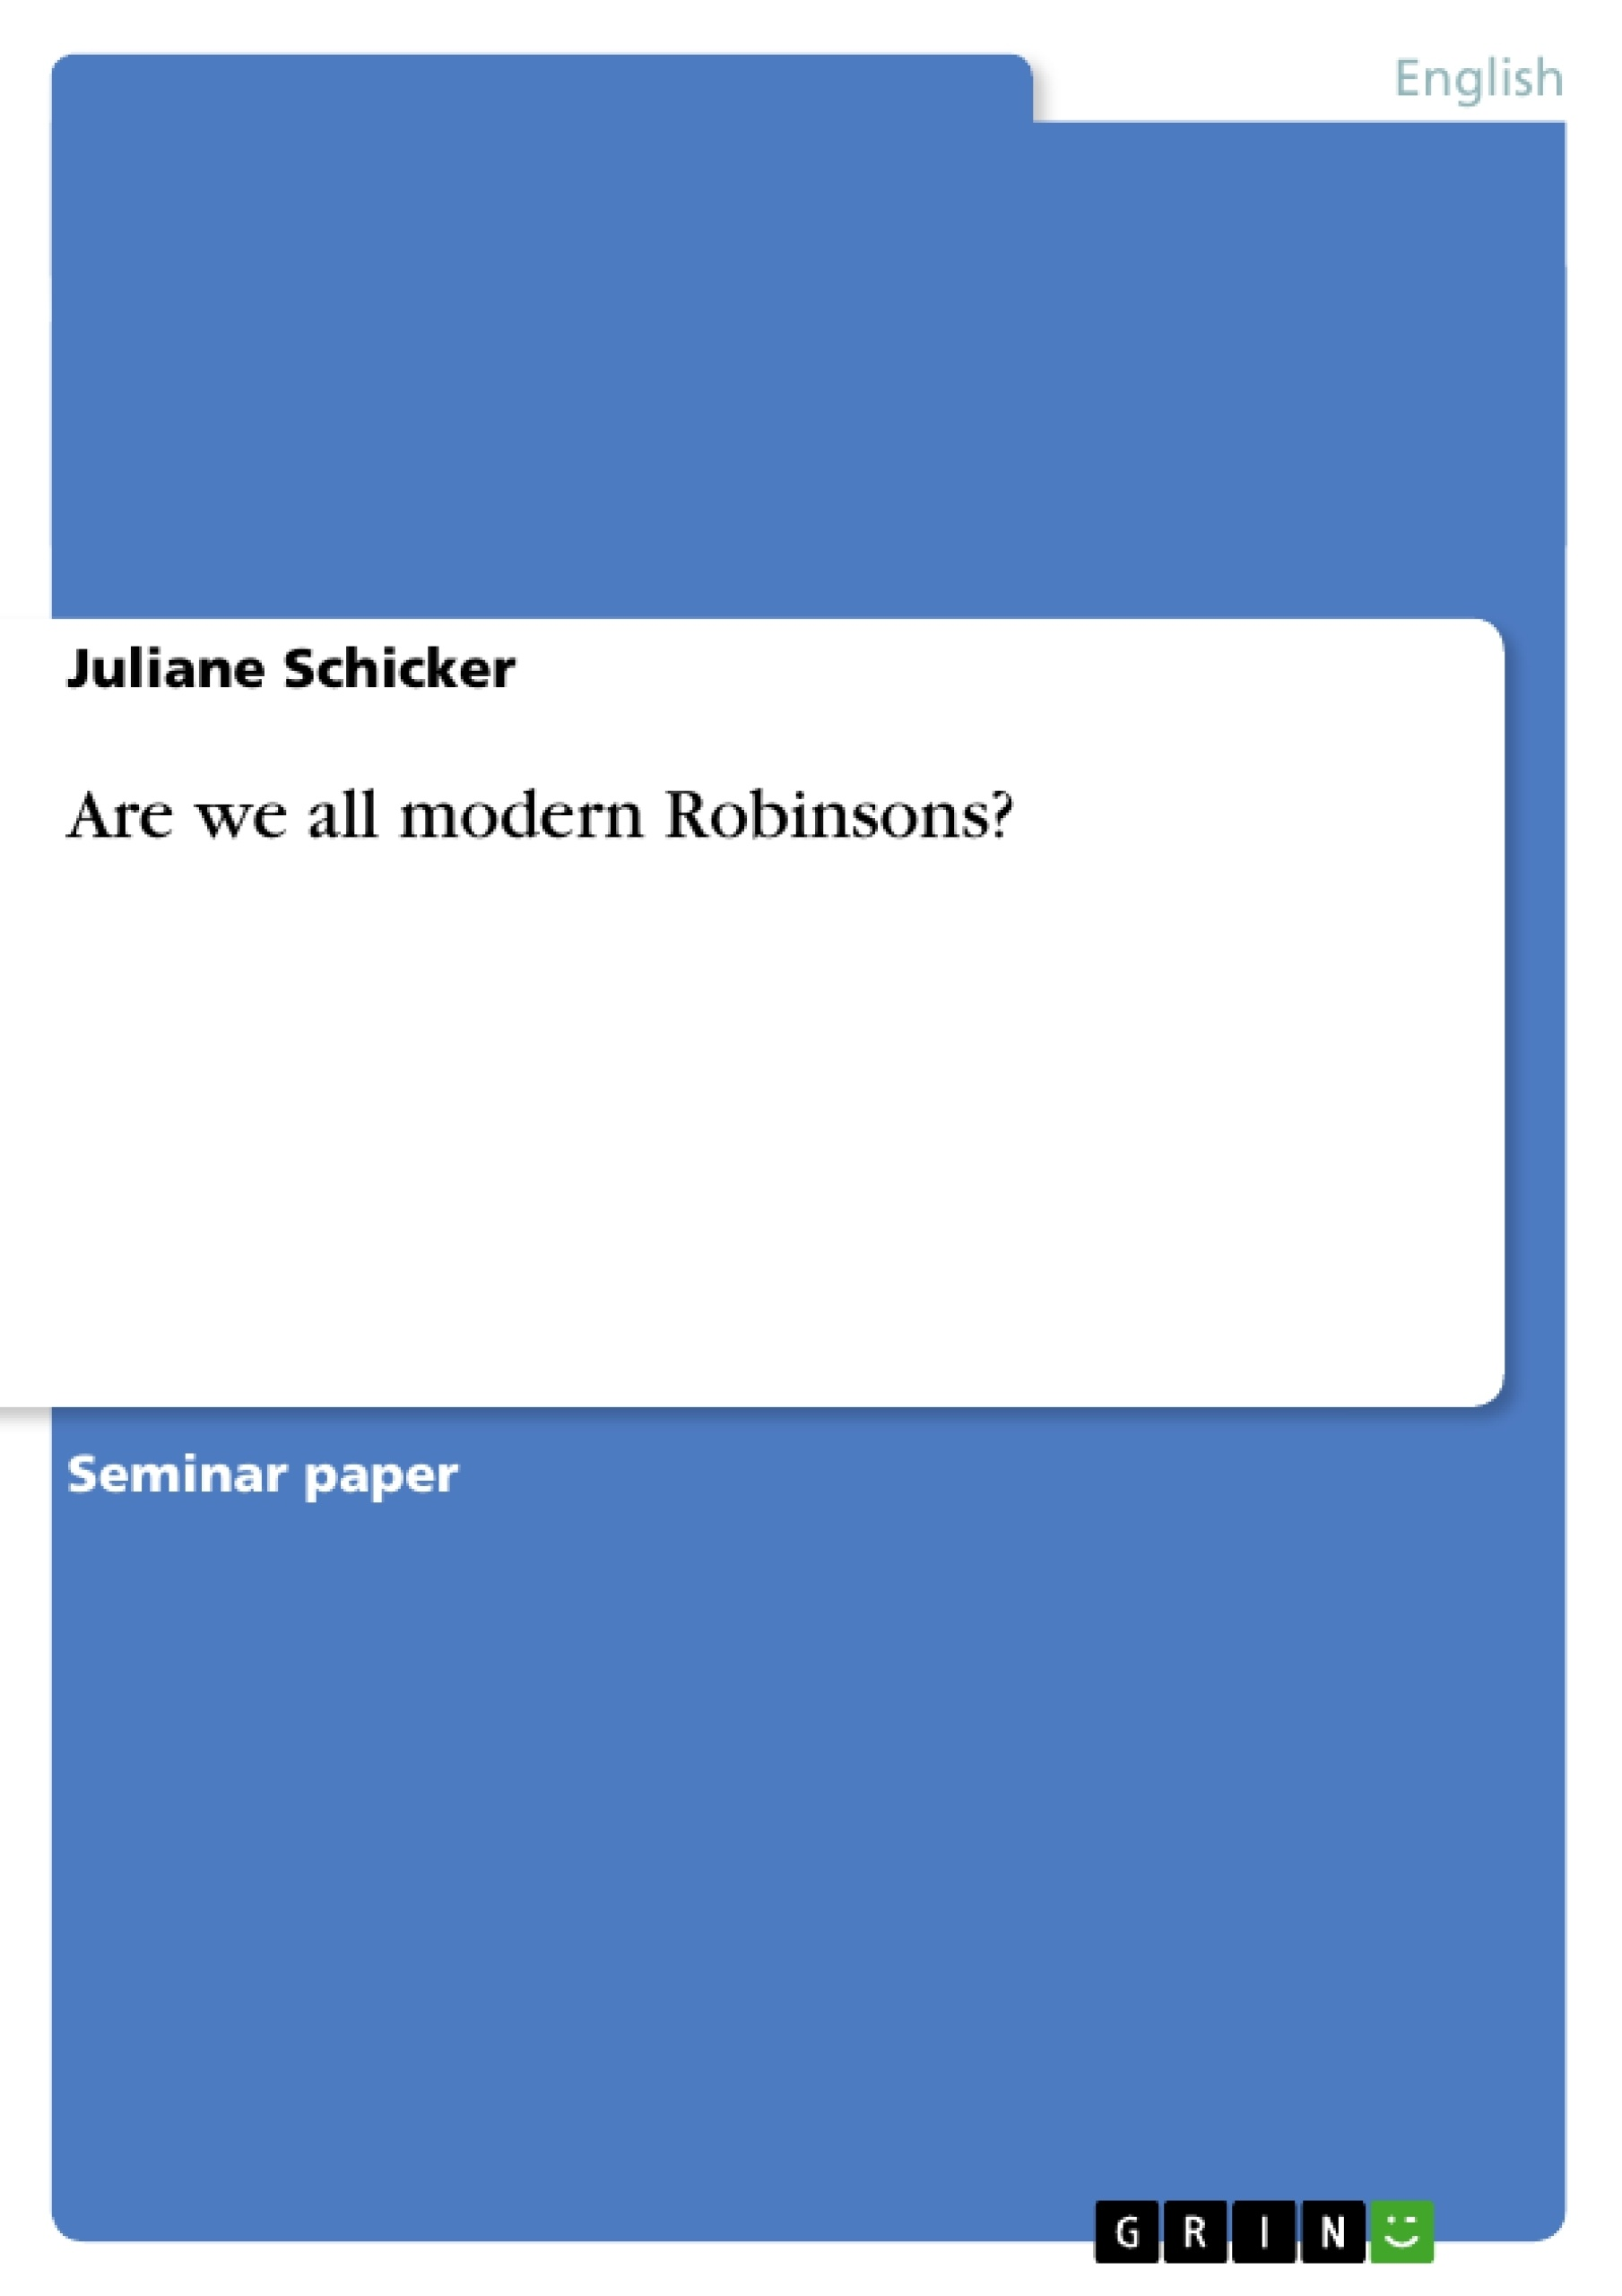 Title: Are we all modern Robinsons?